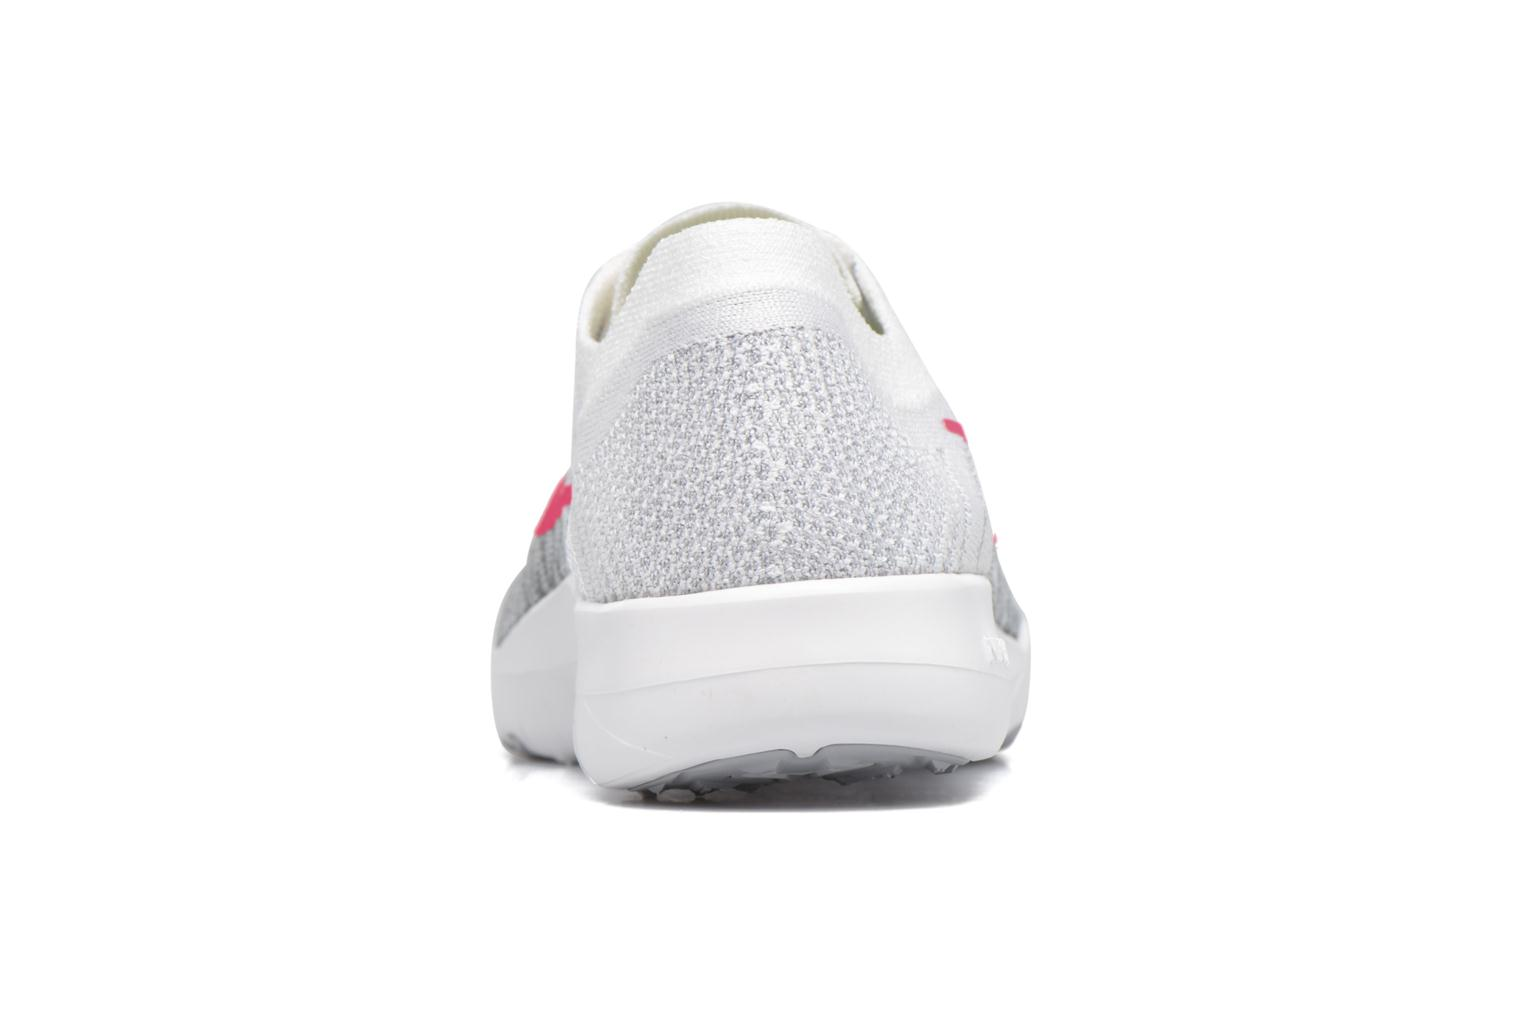 Chaussures de sport Nike Wmns Nike Free Tr Flyknit 2 Rose vue droite